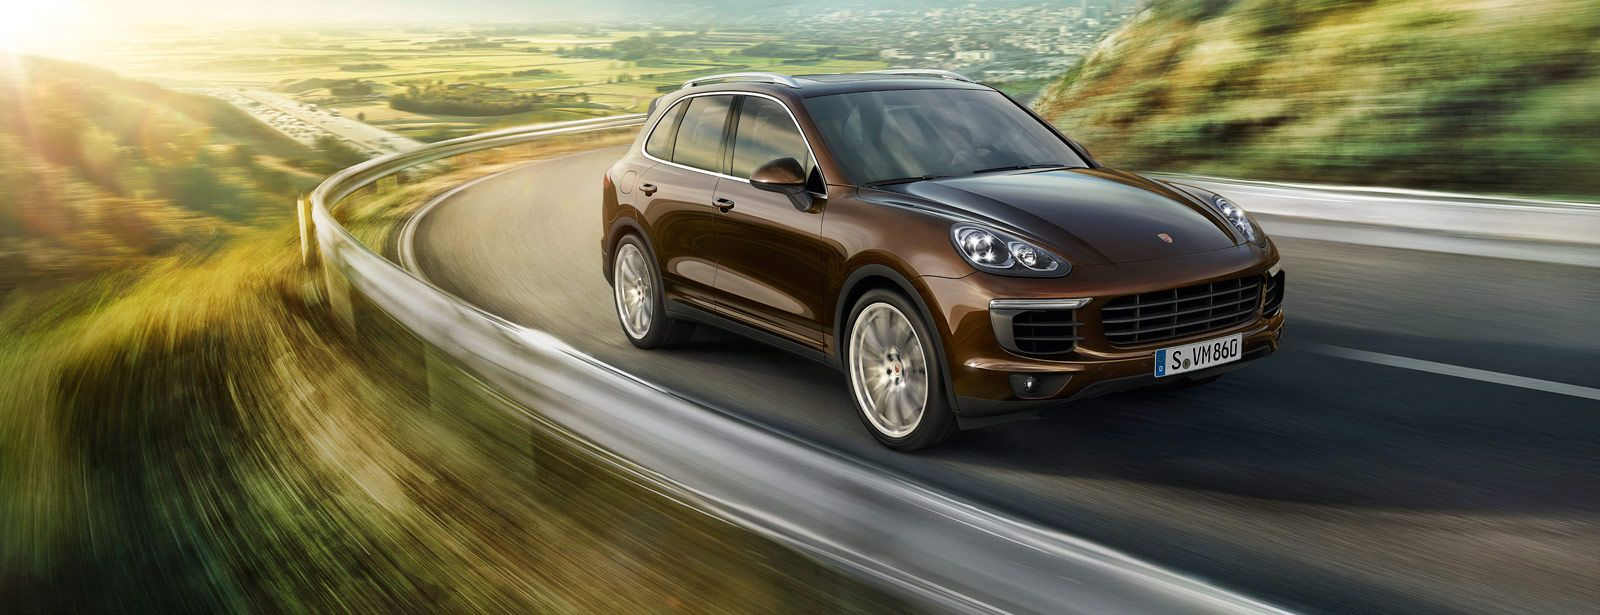 Certified Pre-Owned Porsche Cayenne